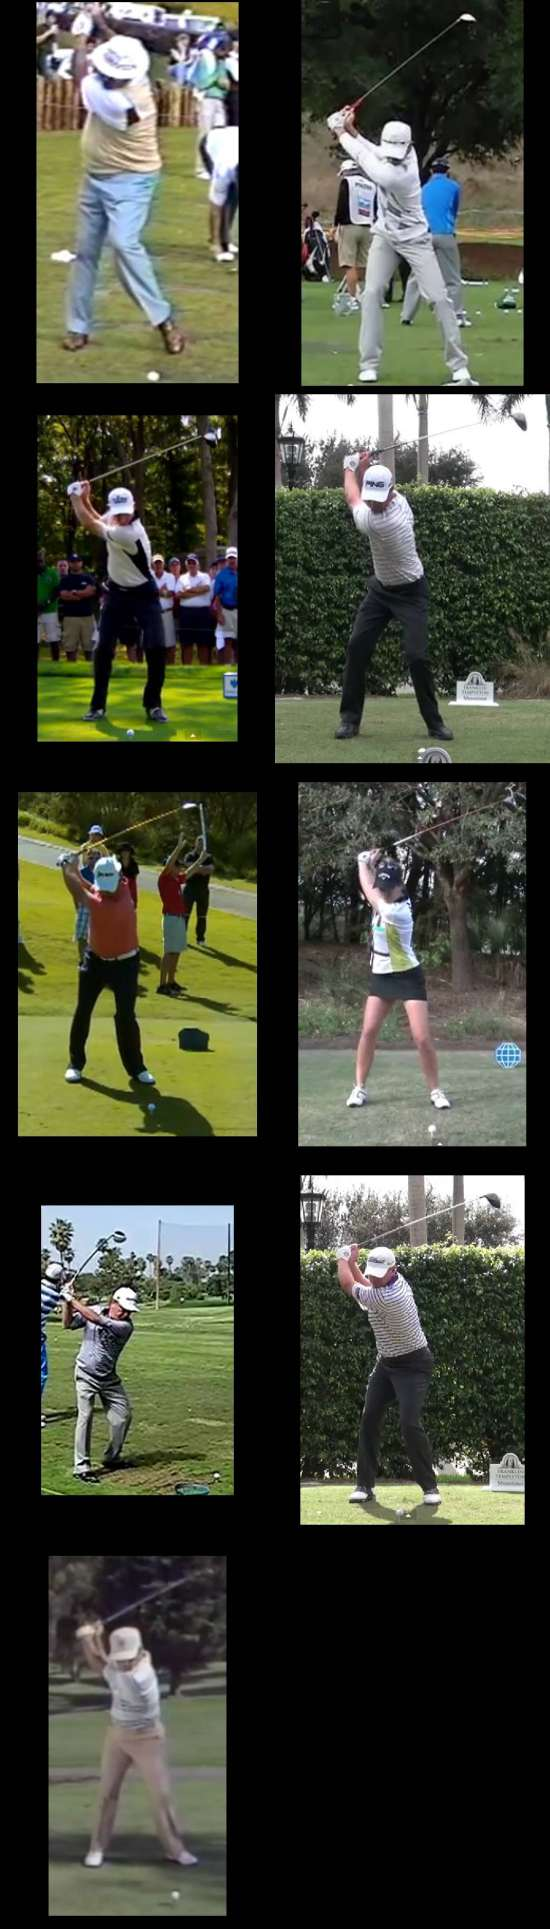 collage of golfers swinging the club short of parallel